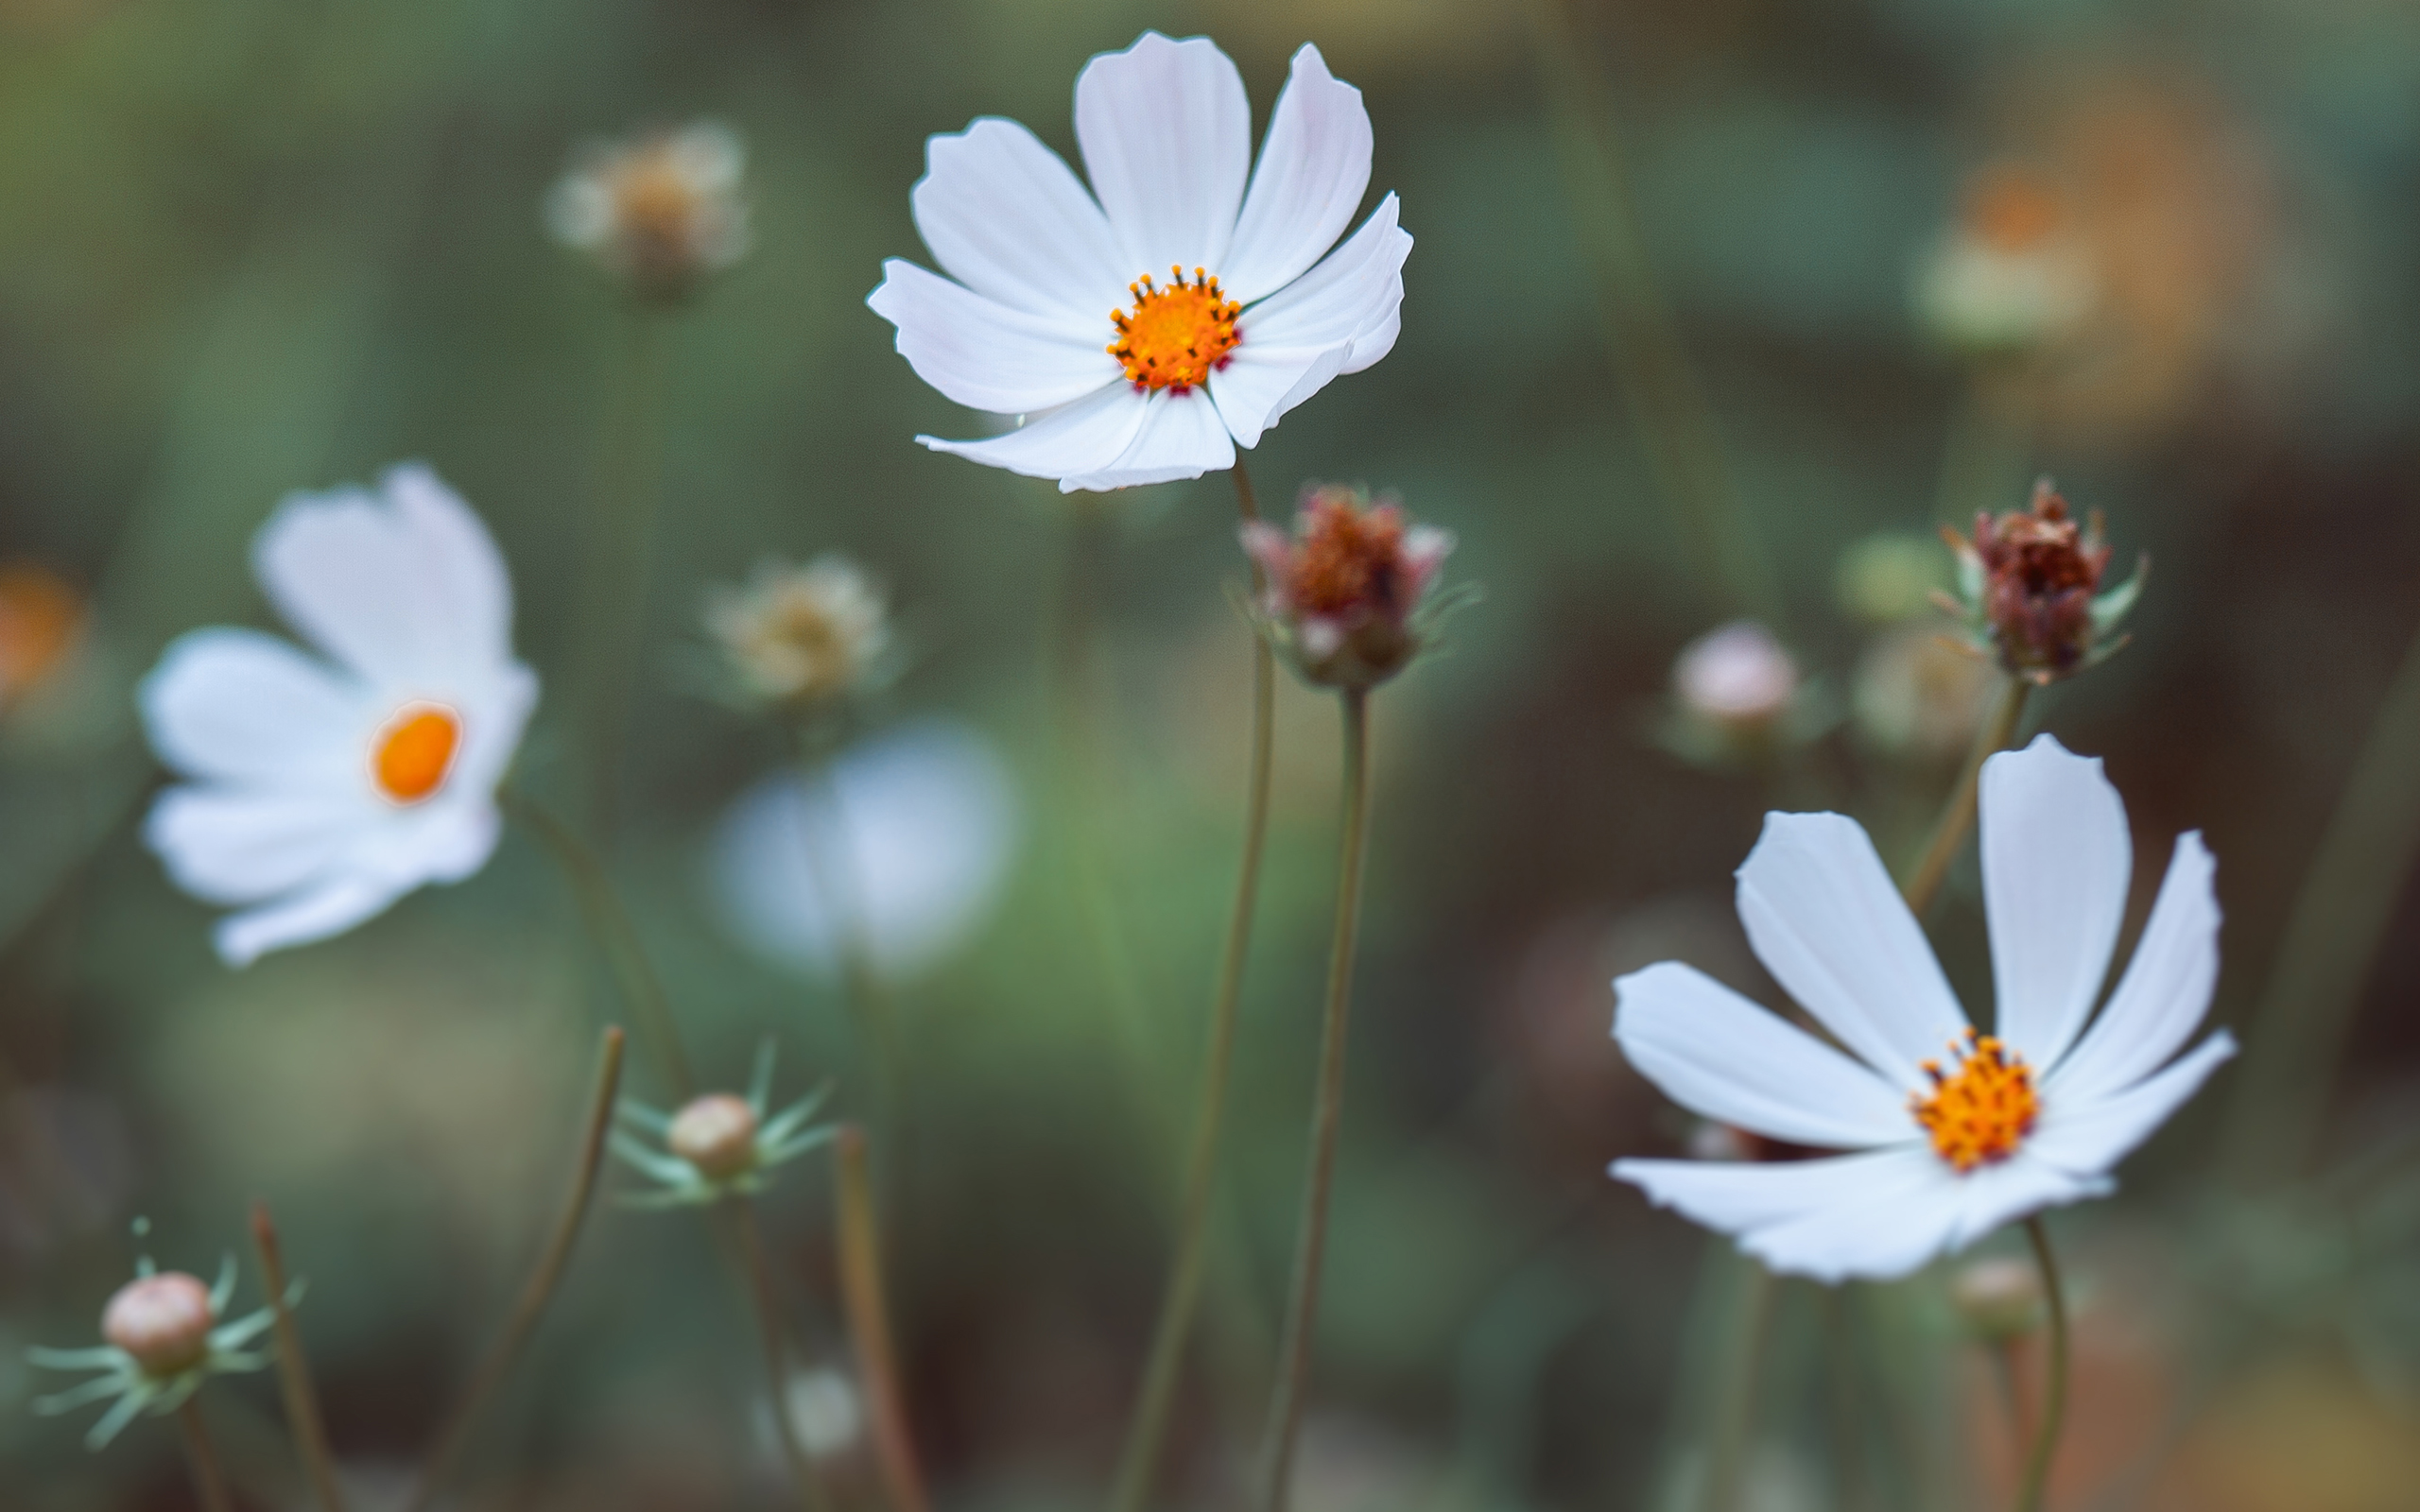 Daisies by enioku, white daisies, field, wild, nature, green